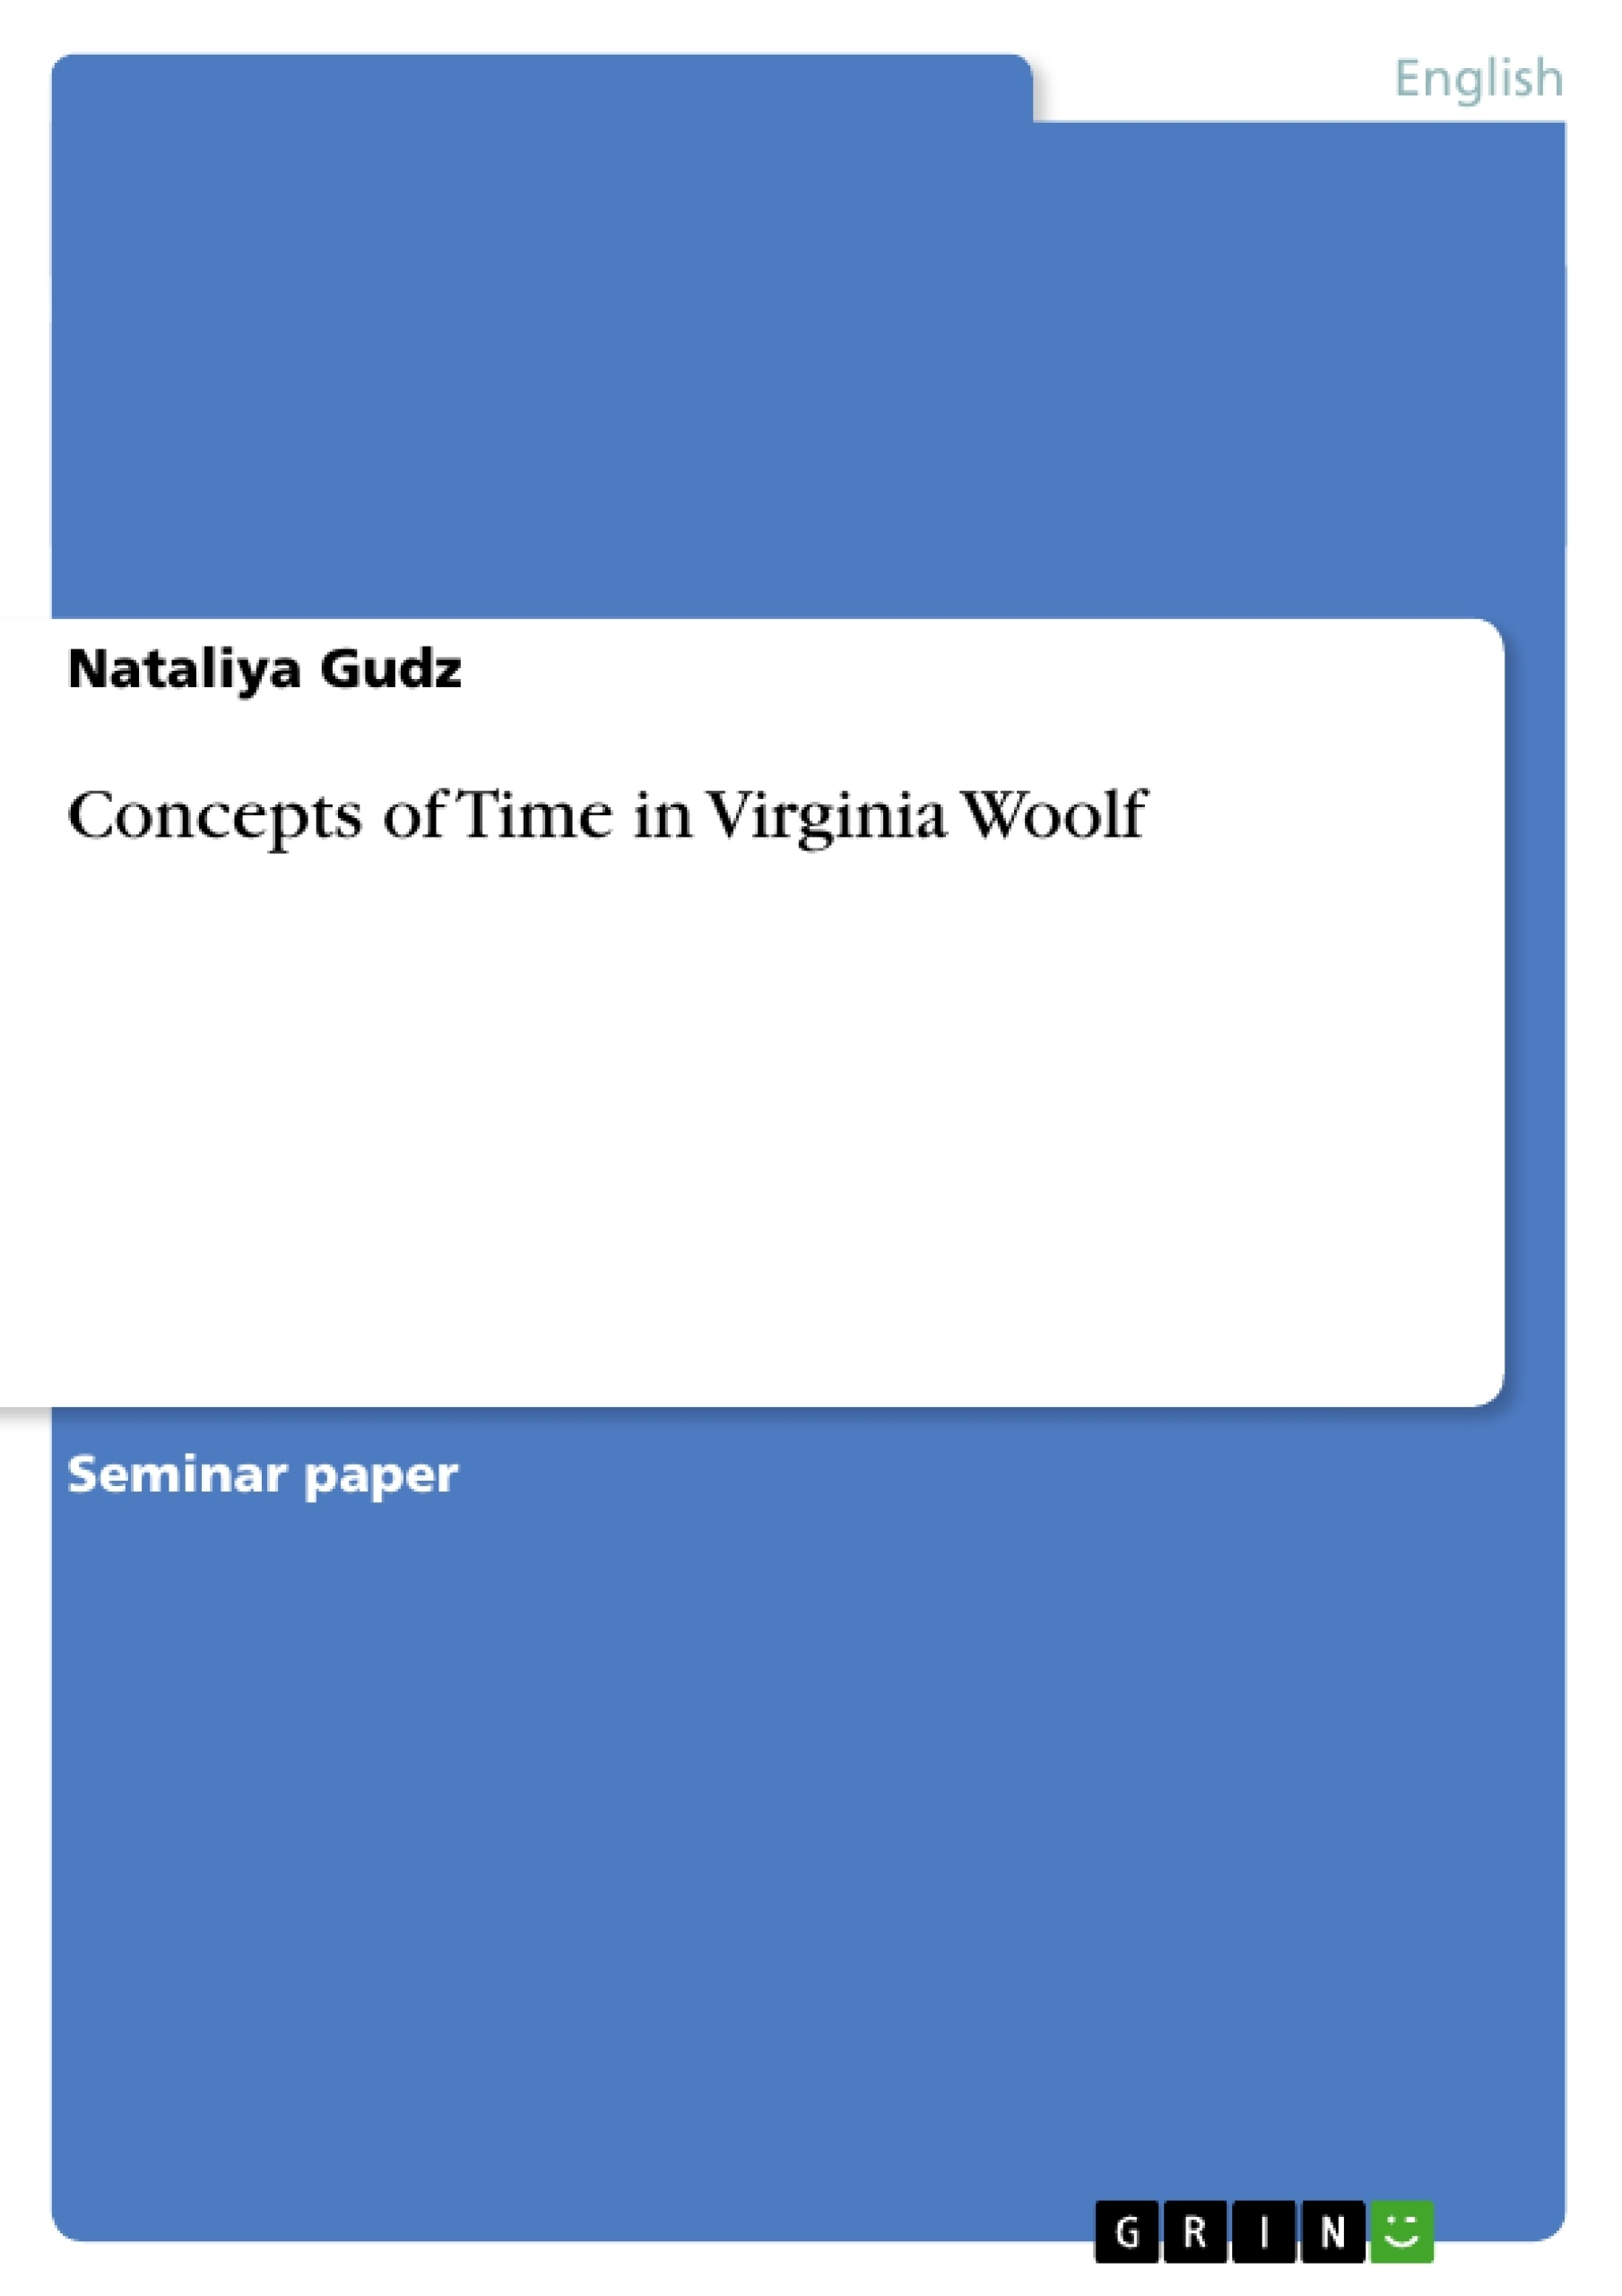 Title: Concepts of Time in Virginia Woolf